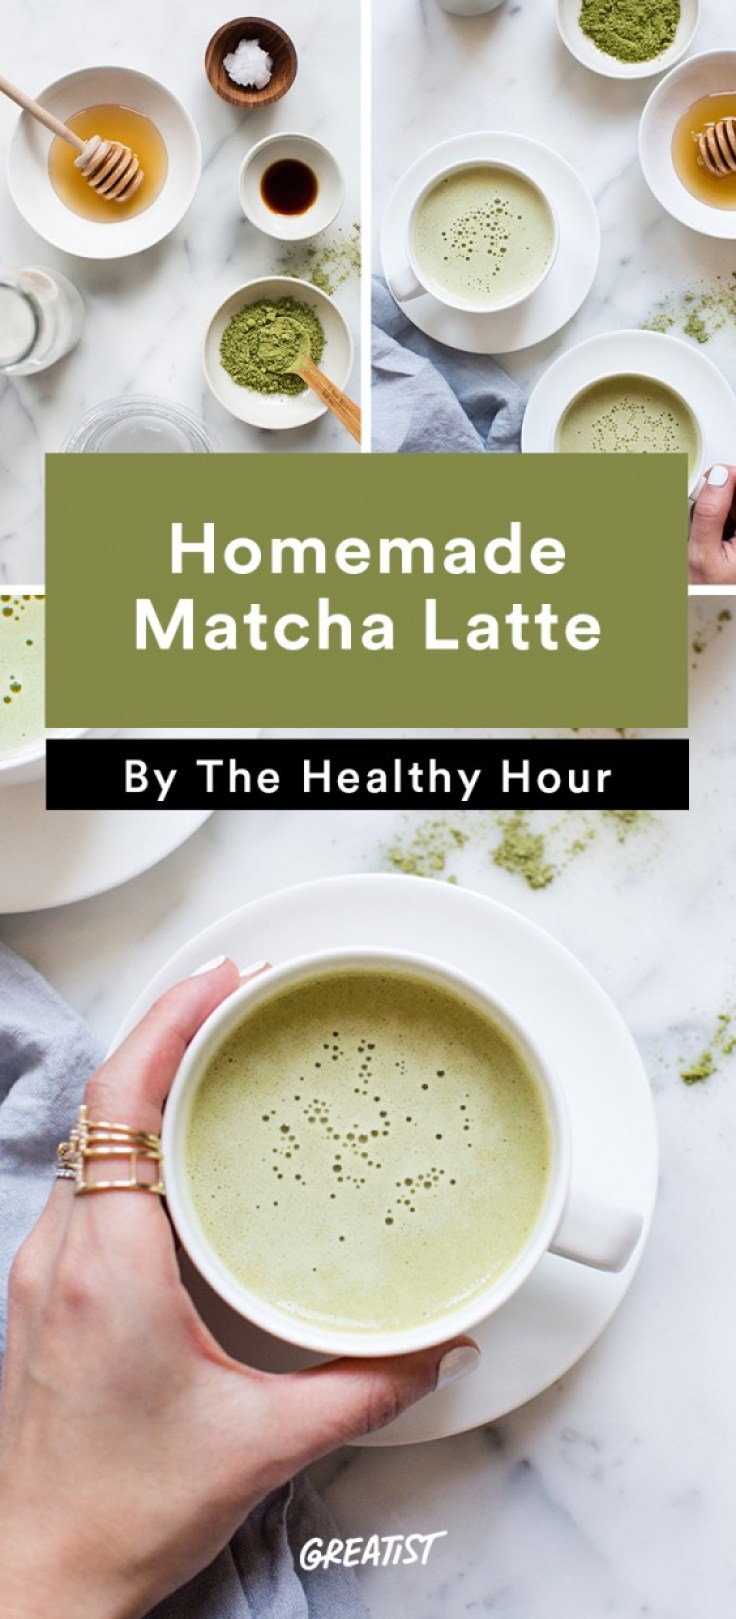 the healthy hour: Matcha